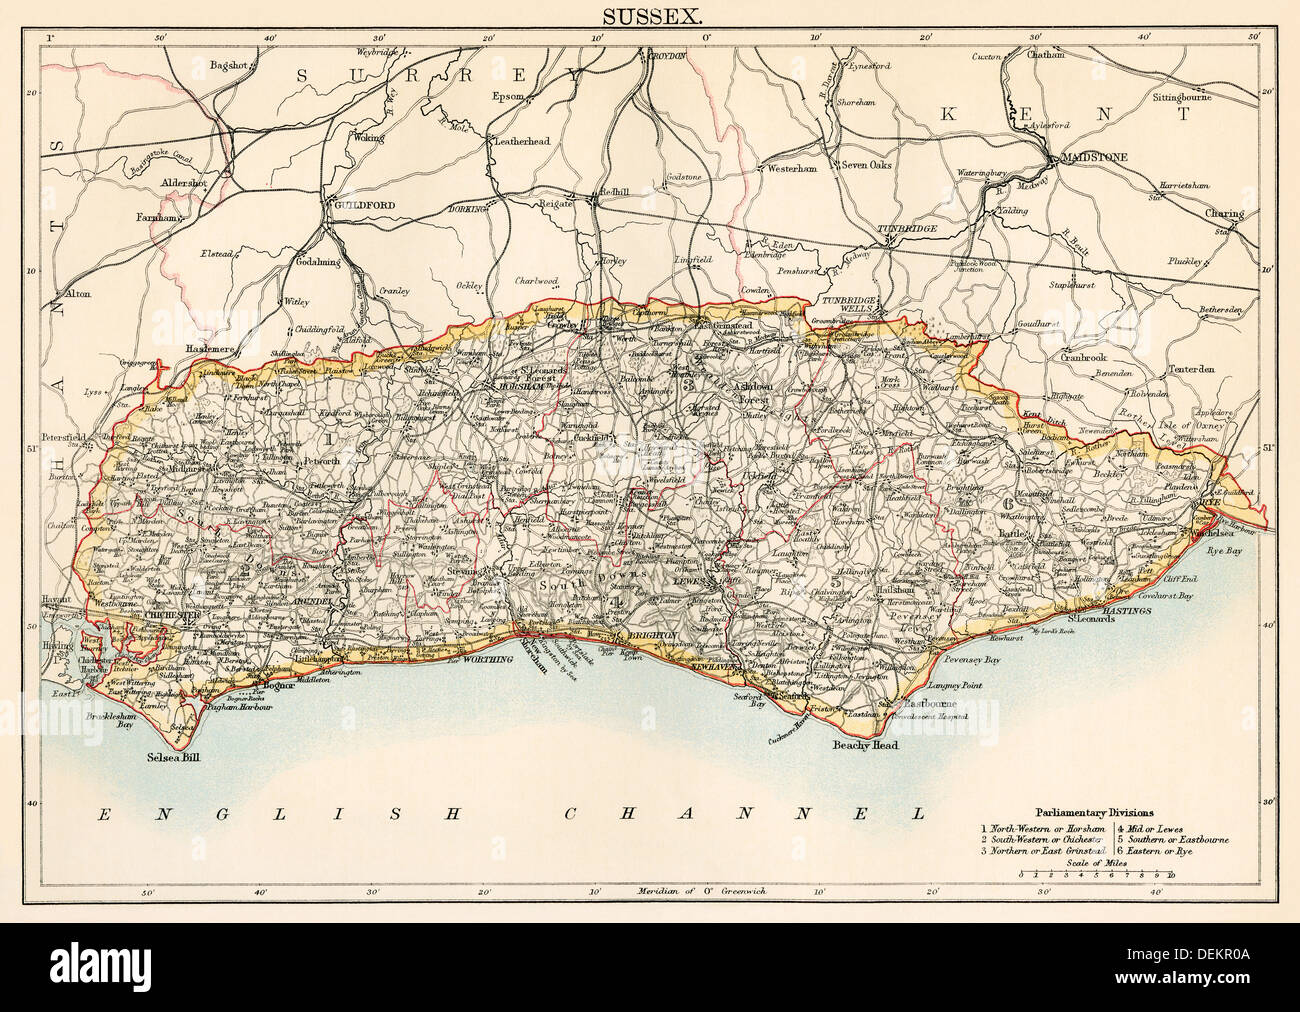 Map of Sussex, England, 1870s. Color lithograph - Stock Image